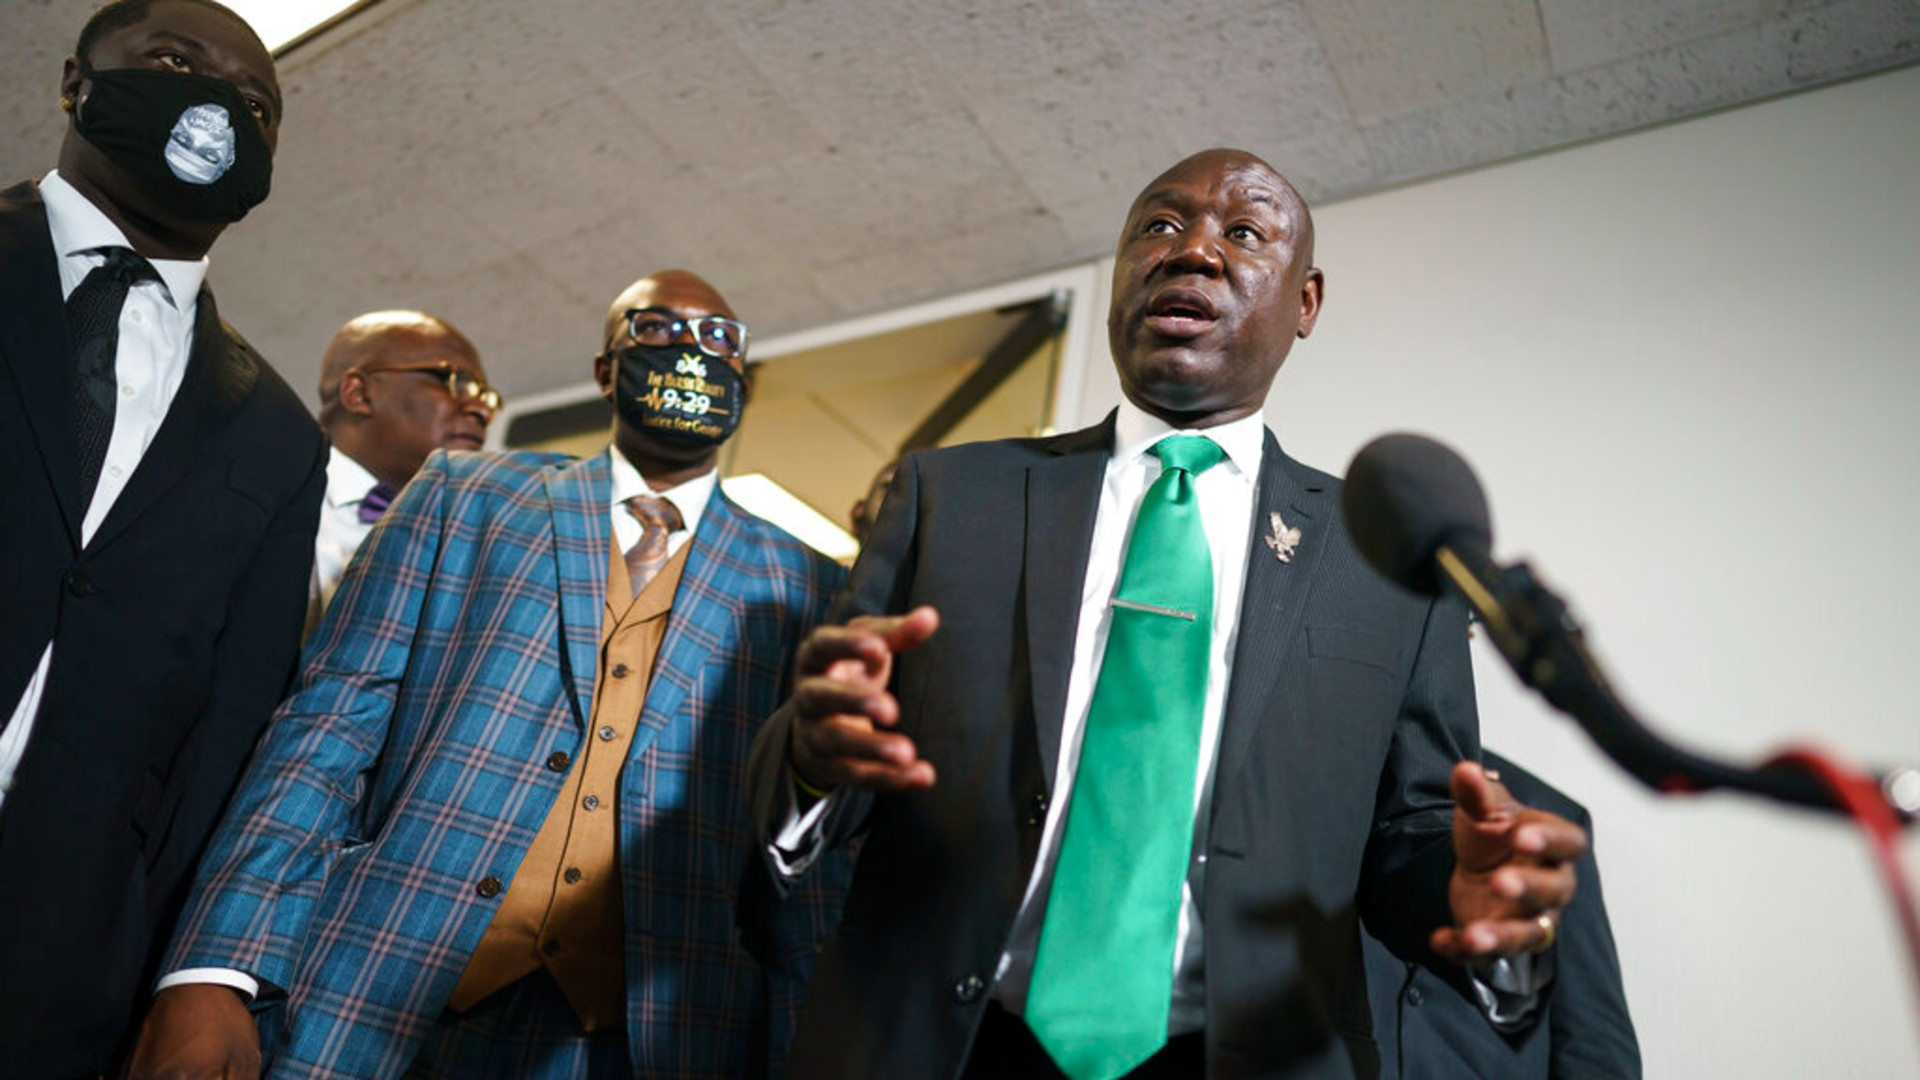 In this May 25, 2021, file photo, Ben Crump, center, the civil rights attorney representing the family of George Floyd, speaks to reporters after they met with Sen. Cory Booker, D-N.J., about police reform legislation, at the Capitol in Washington. (AP Photo/J. Scott Applewhite, File)